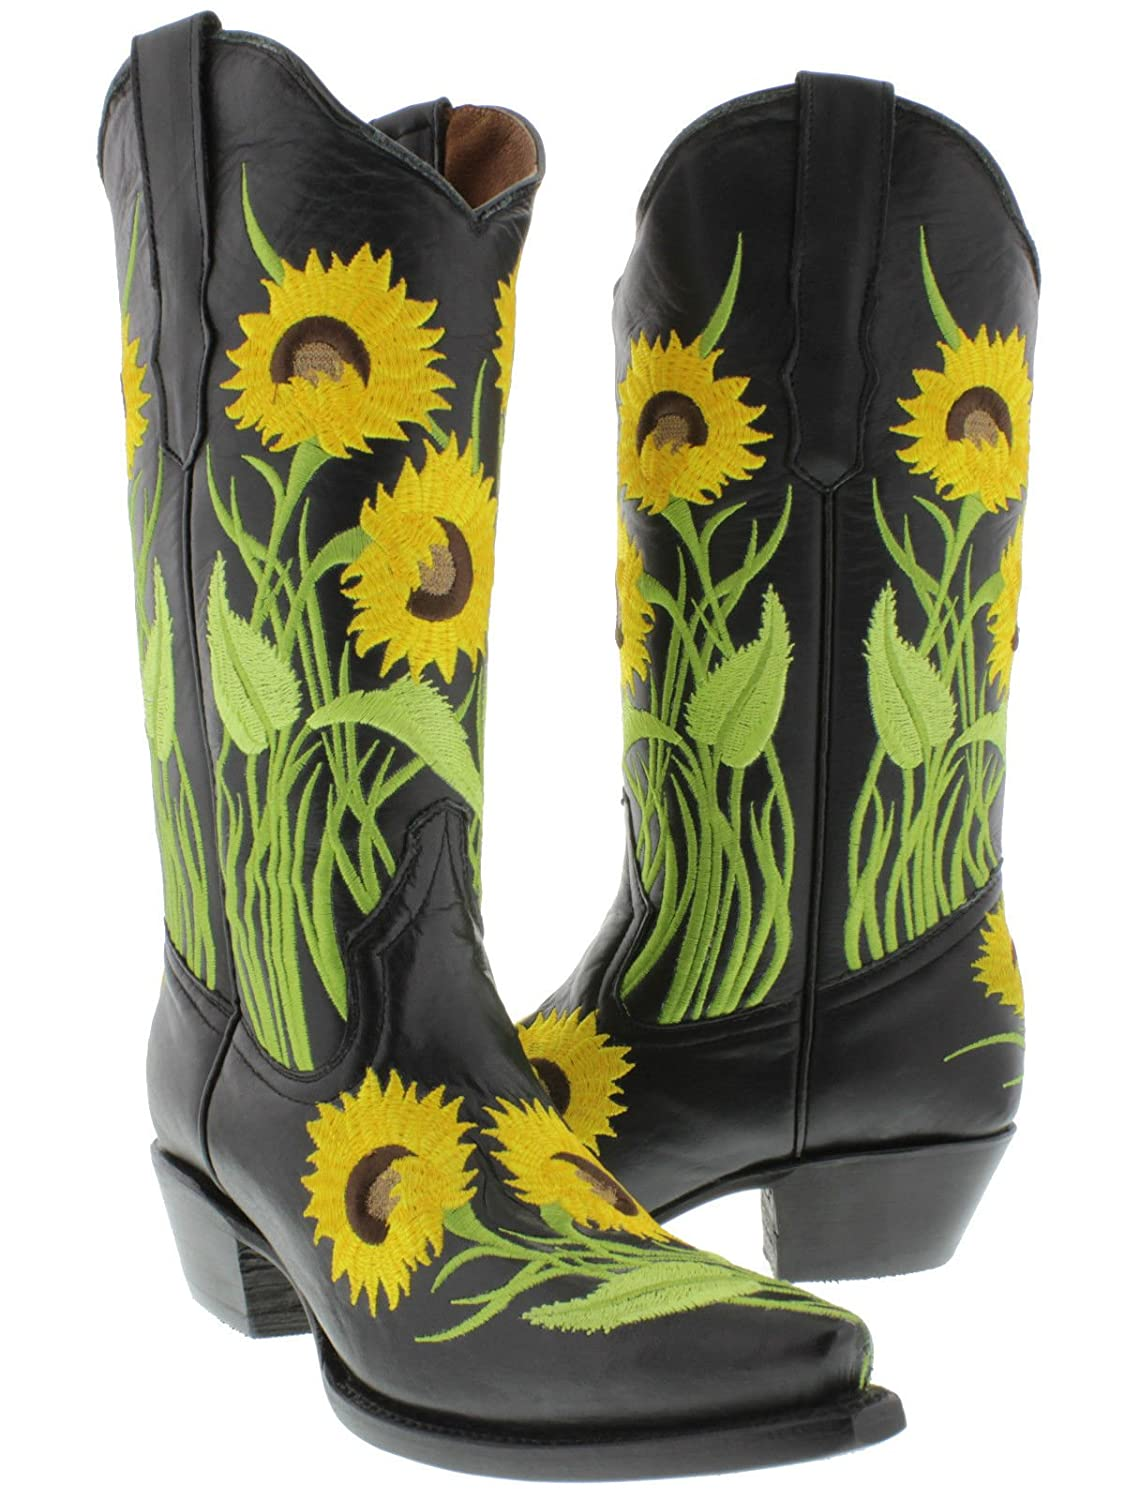 0a728d38d69 Cowboy Professional - Women's Black Sunflower Embroidery Leather Cowboy  Boots